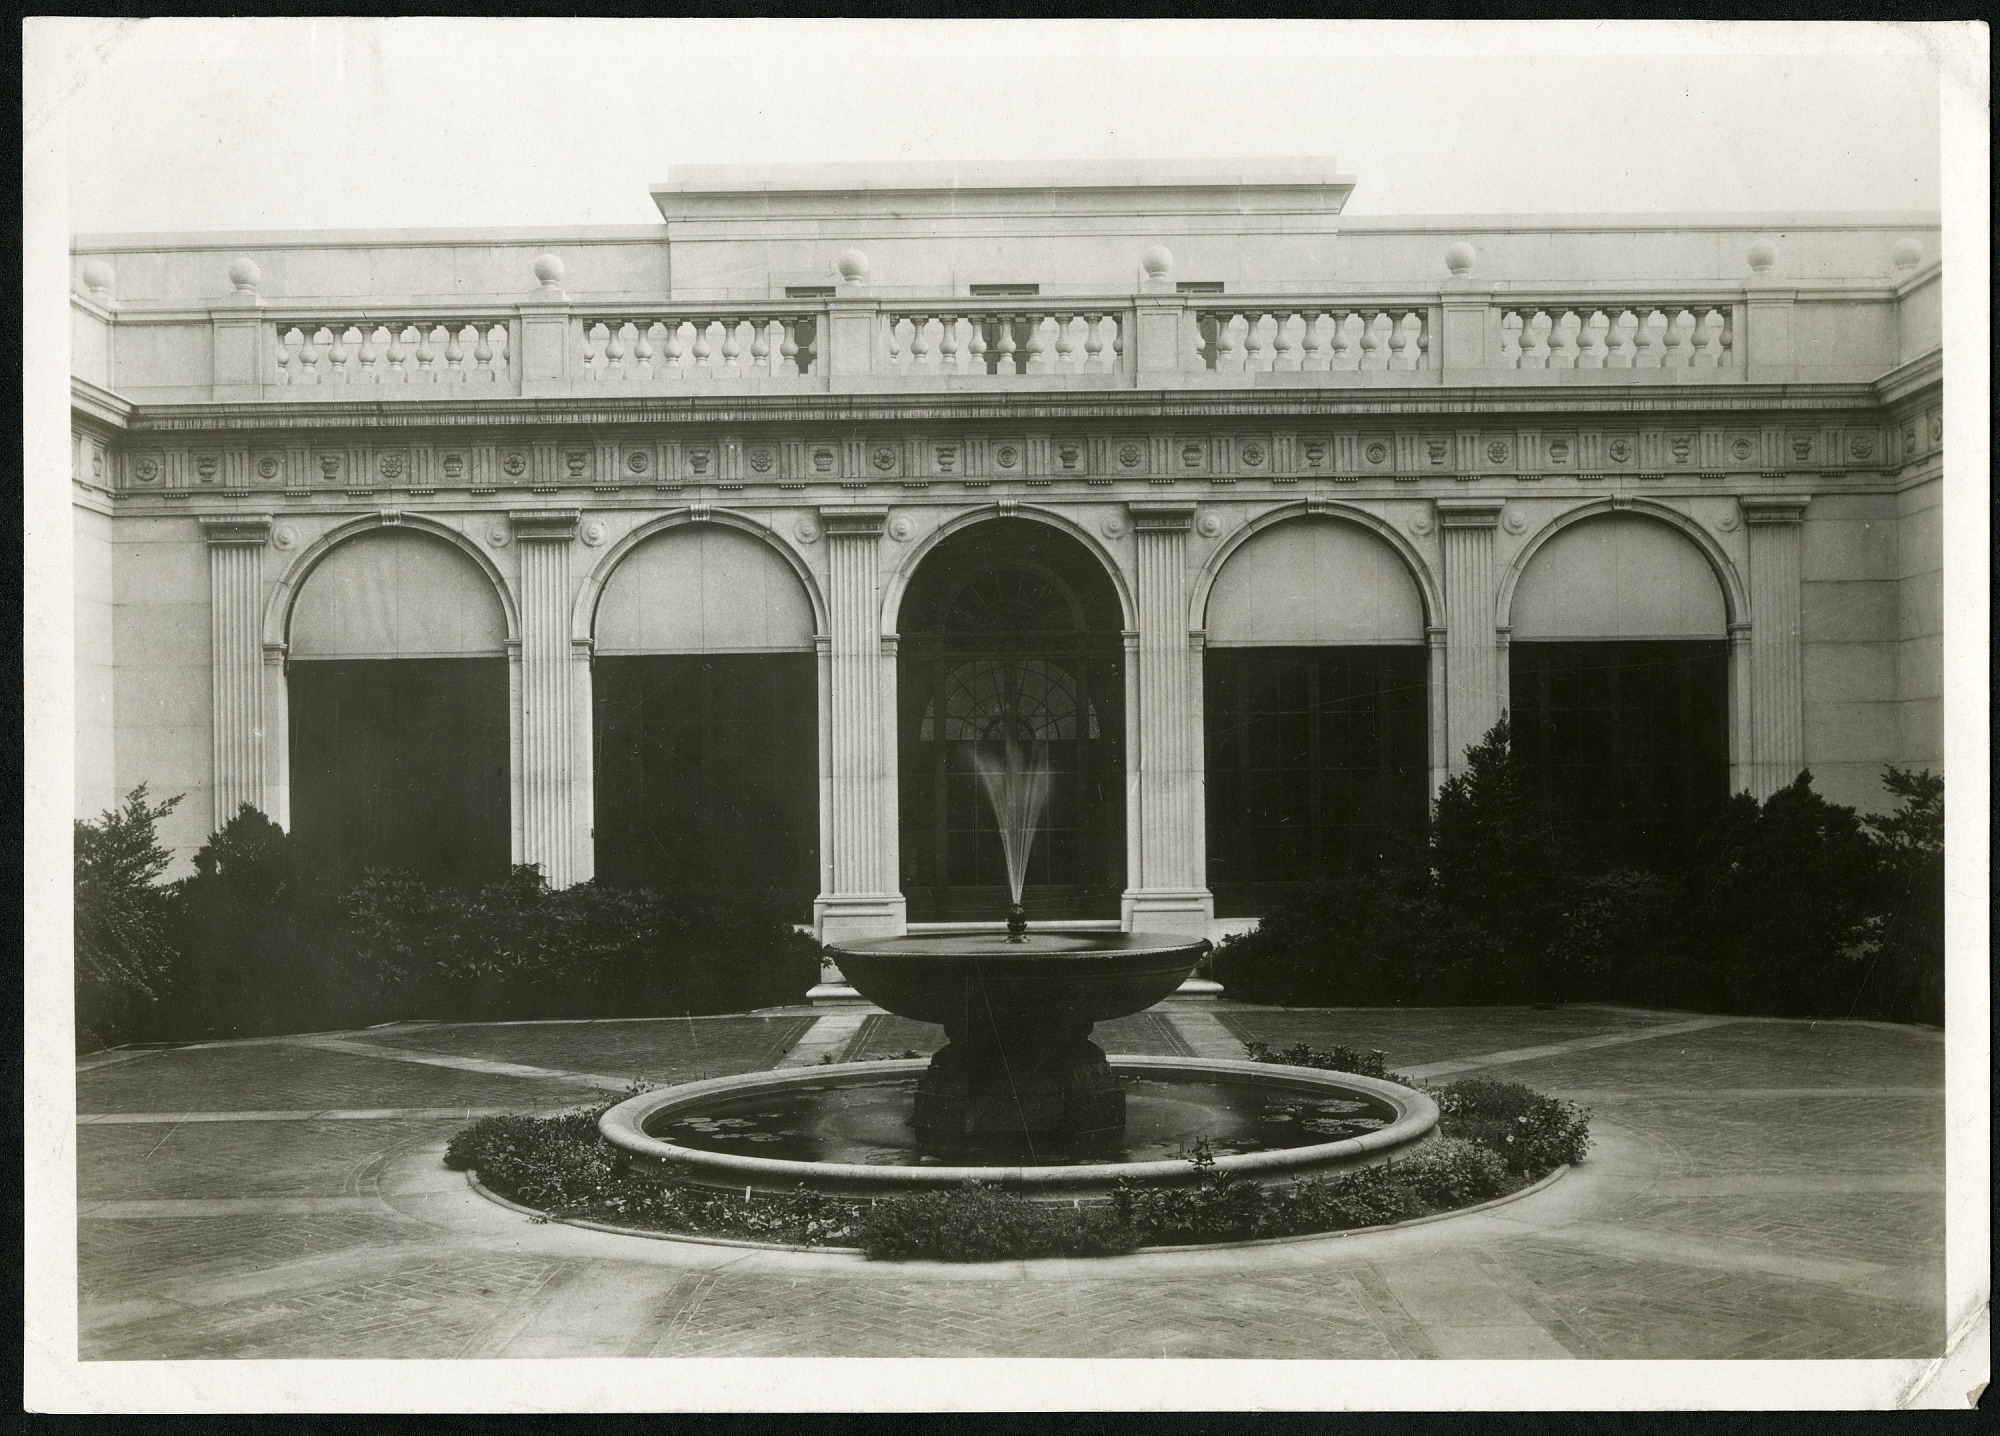 Preview of The Freer Gallery of Art Courtyard, Looking South